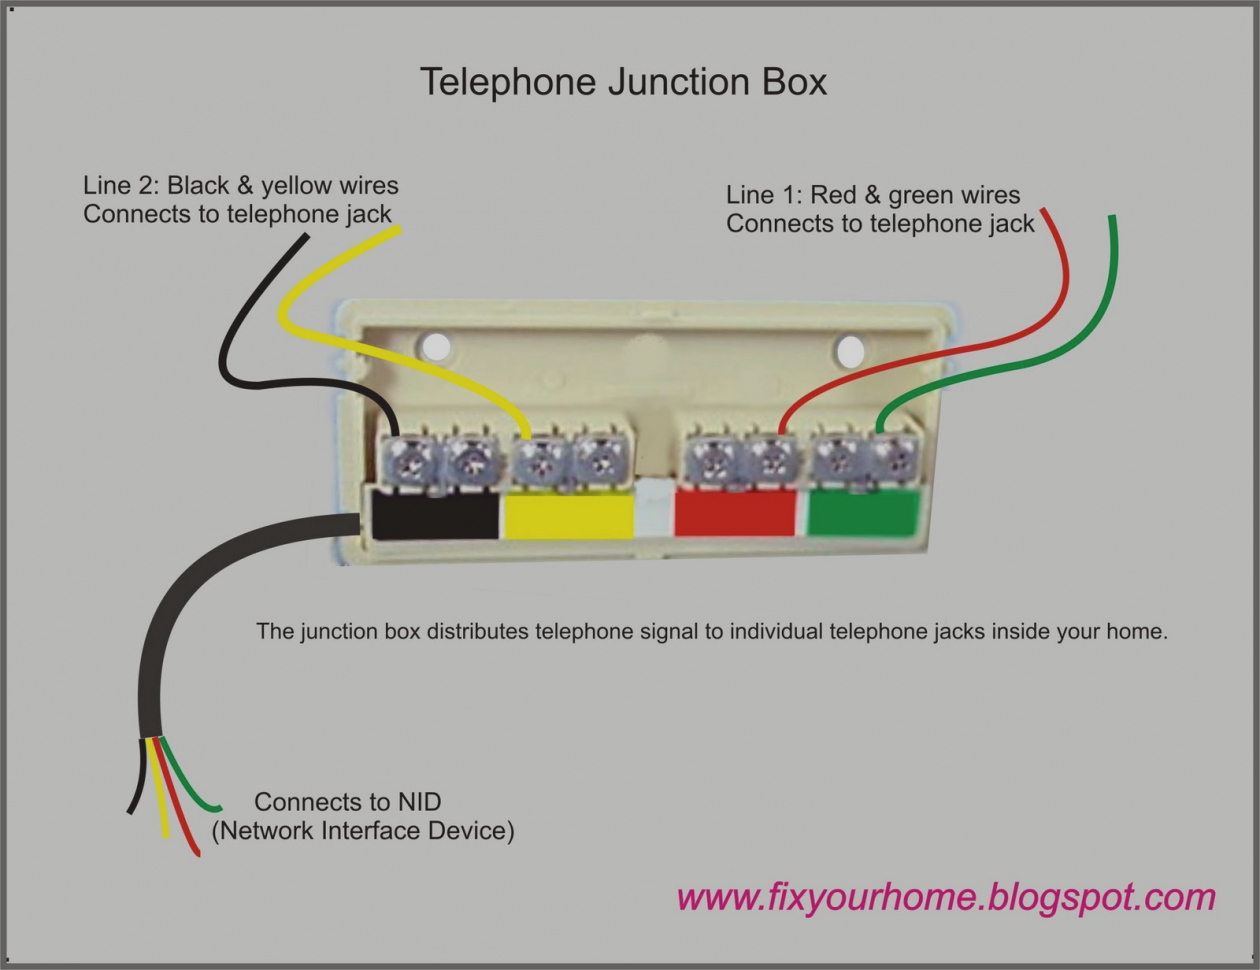 cat 5 wiring diagram wall jack Collection-cat 5 wall jack wiring diagram Collection Amazing Telephone Jack Wiring Diagram Phone Outlet Diagrams 15-l